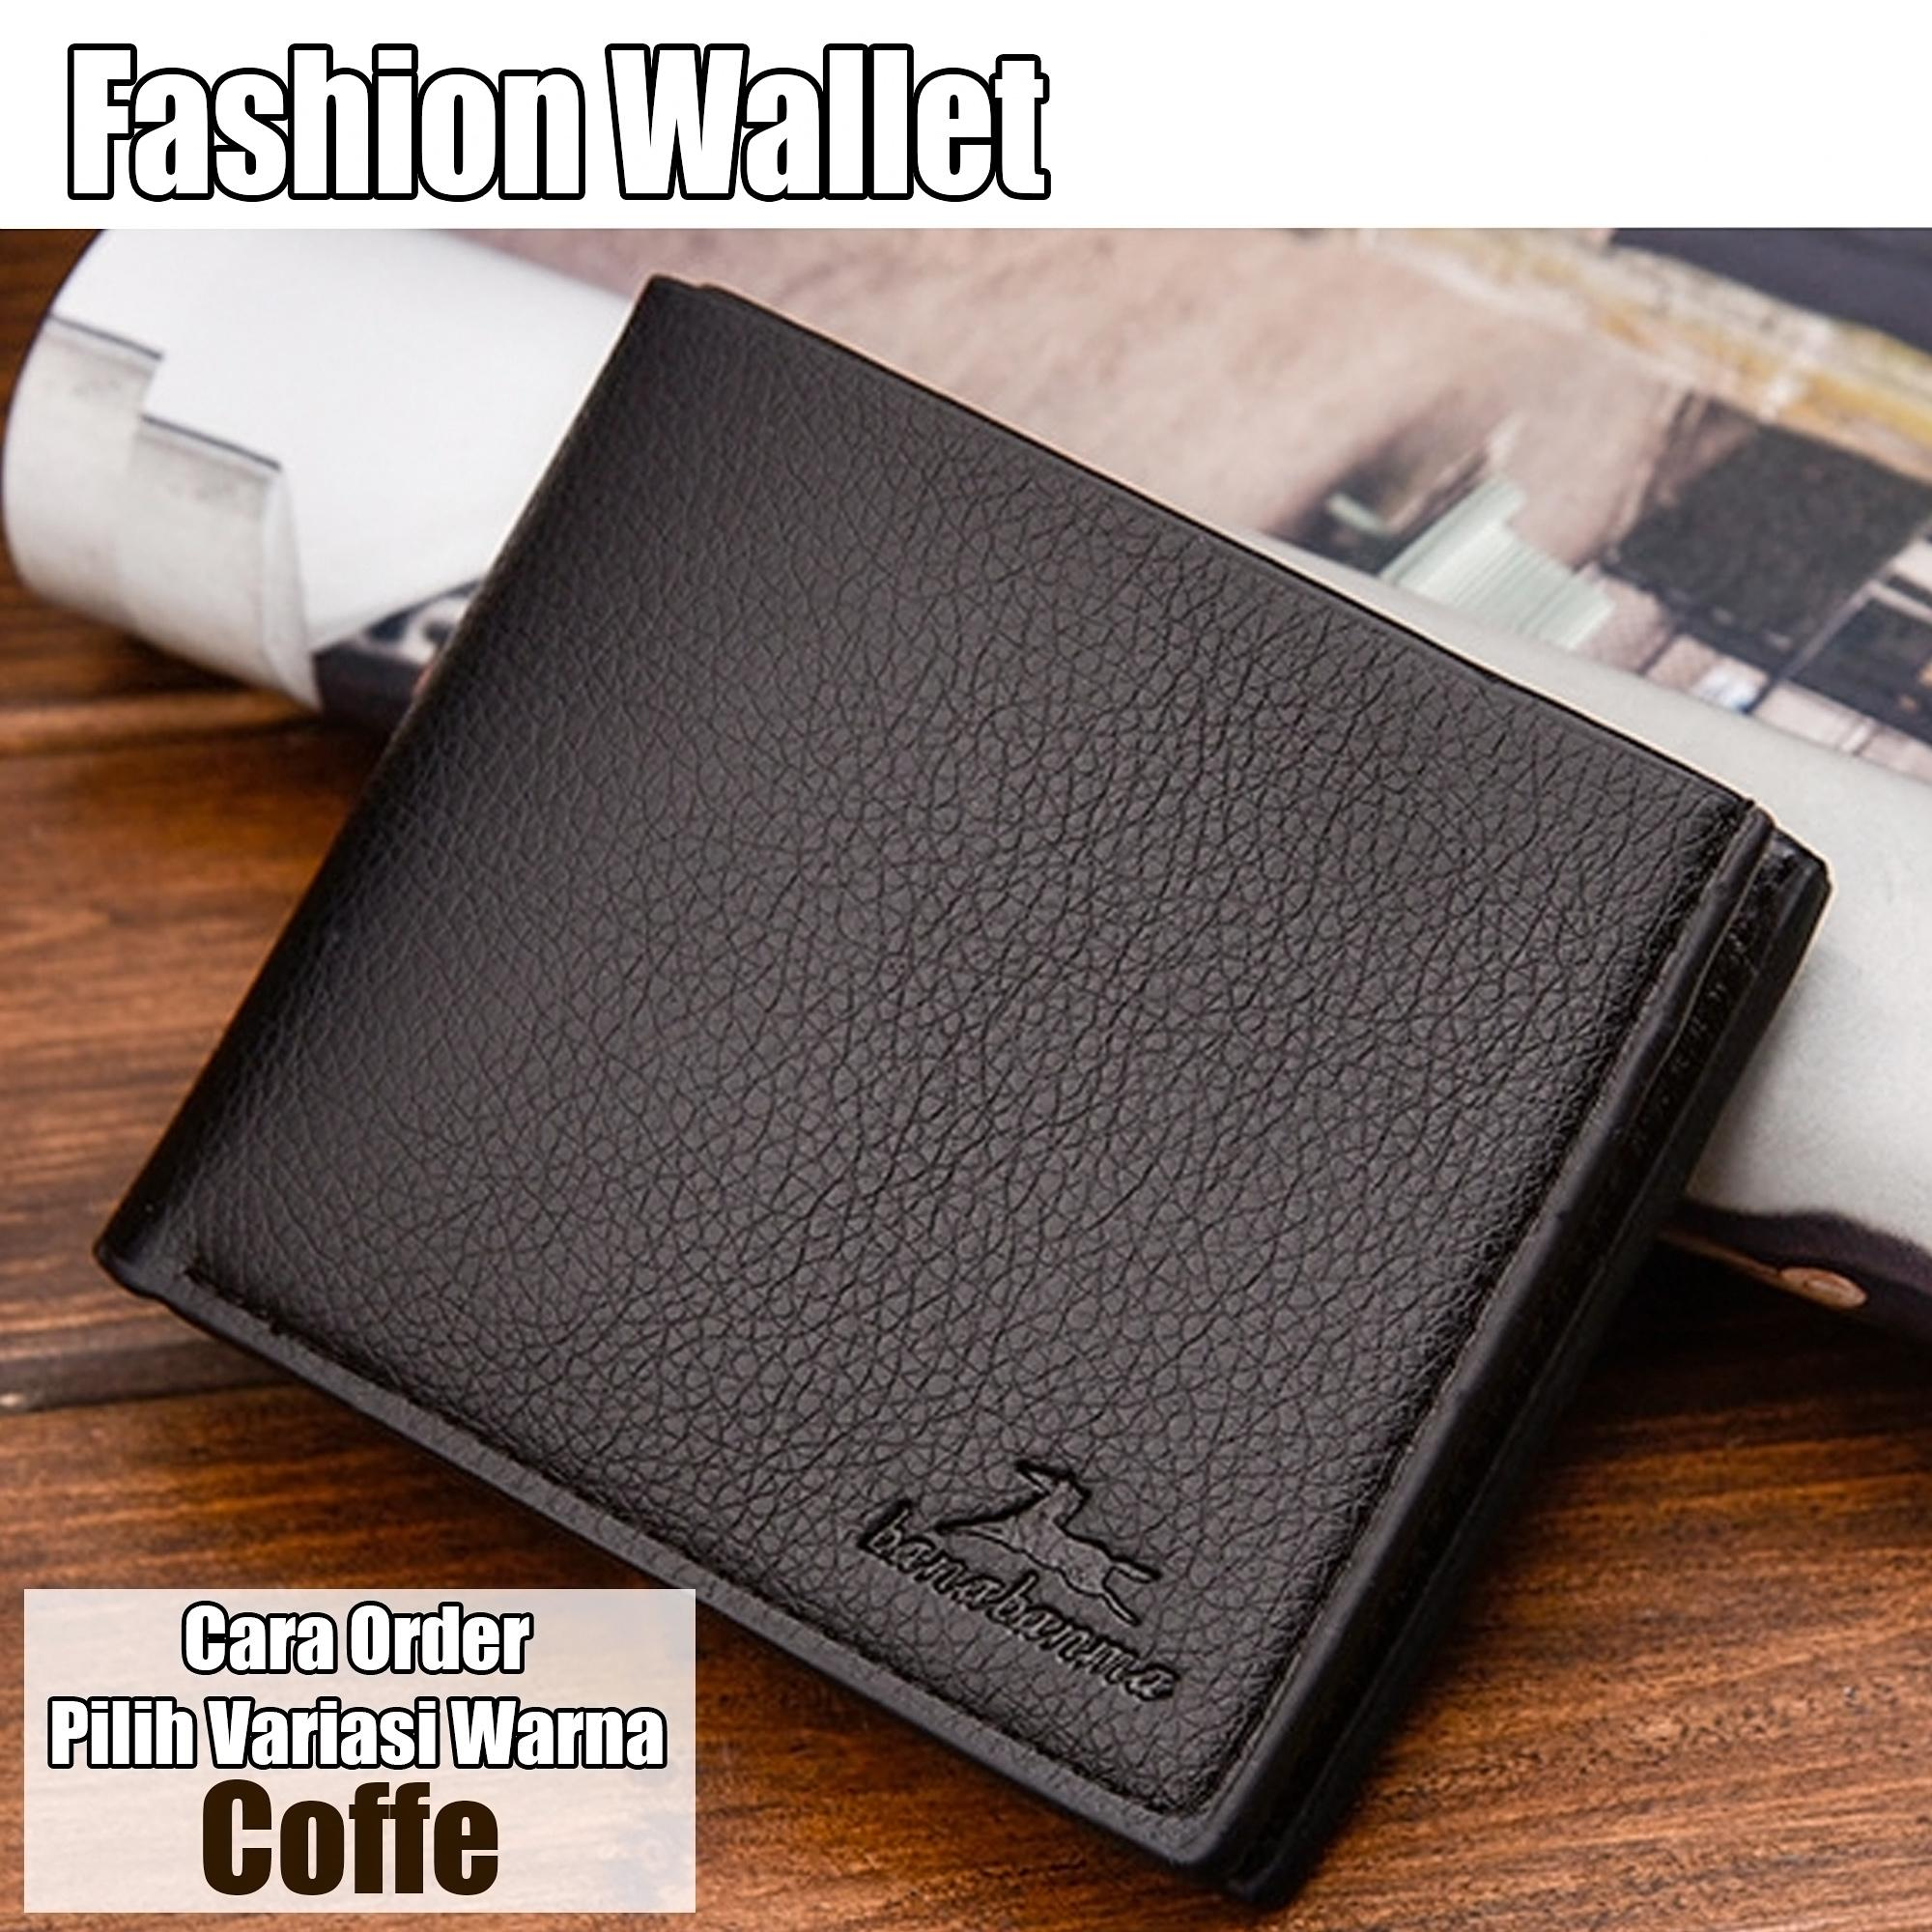 Dompet Pria Import Dompet Pria Dompet Kulit Mens Wallet Import Leather  Wallet Fashion Wallet 7618743bda